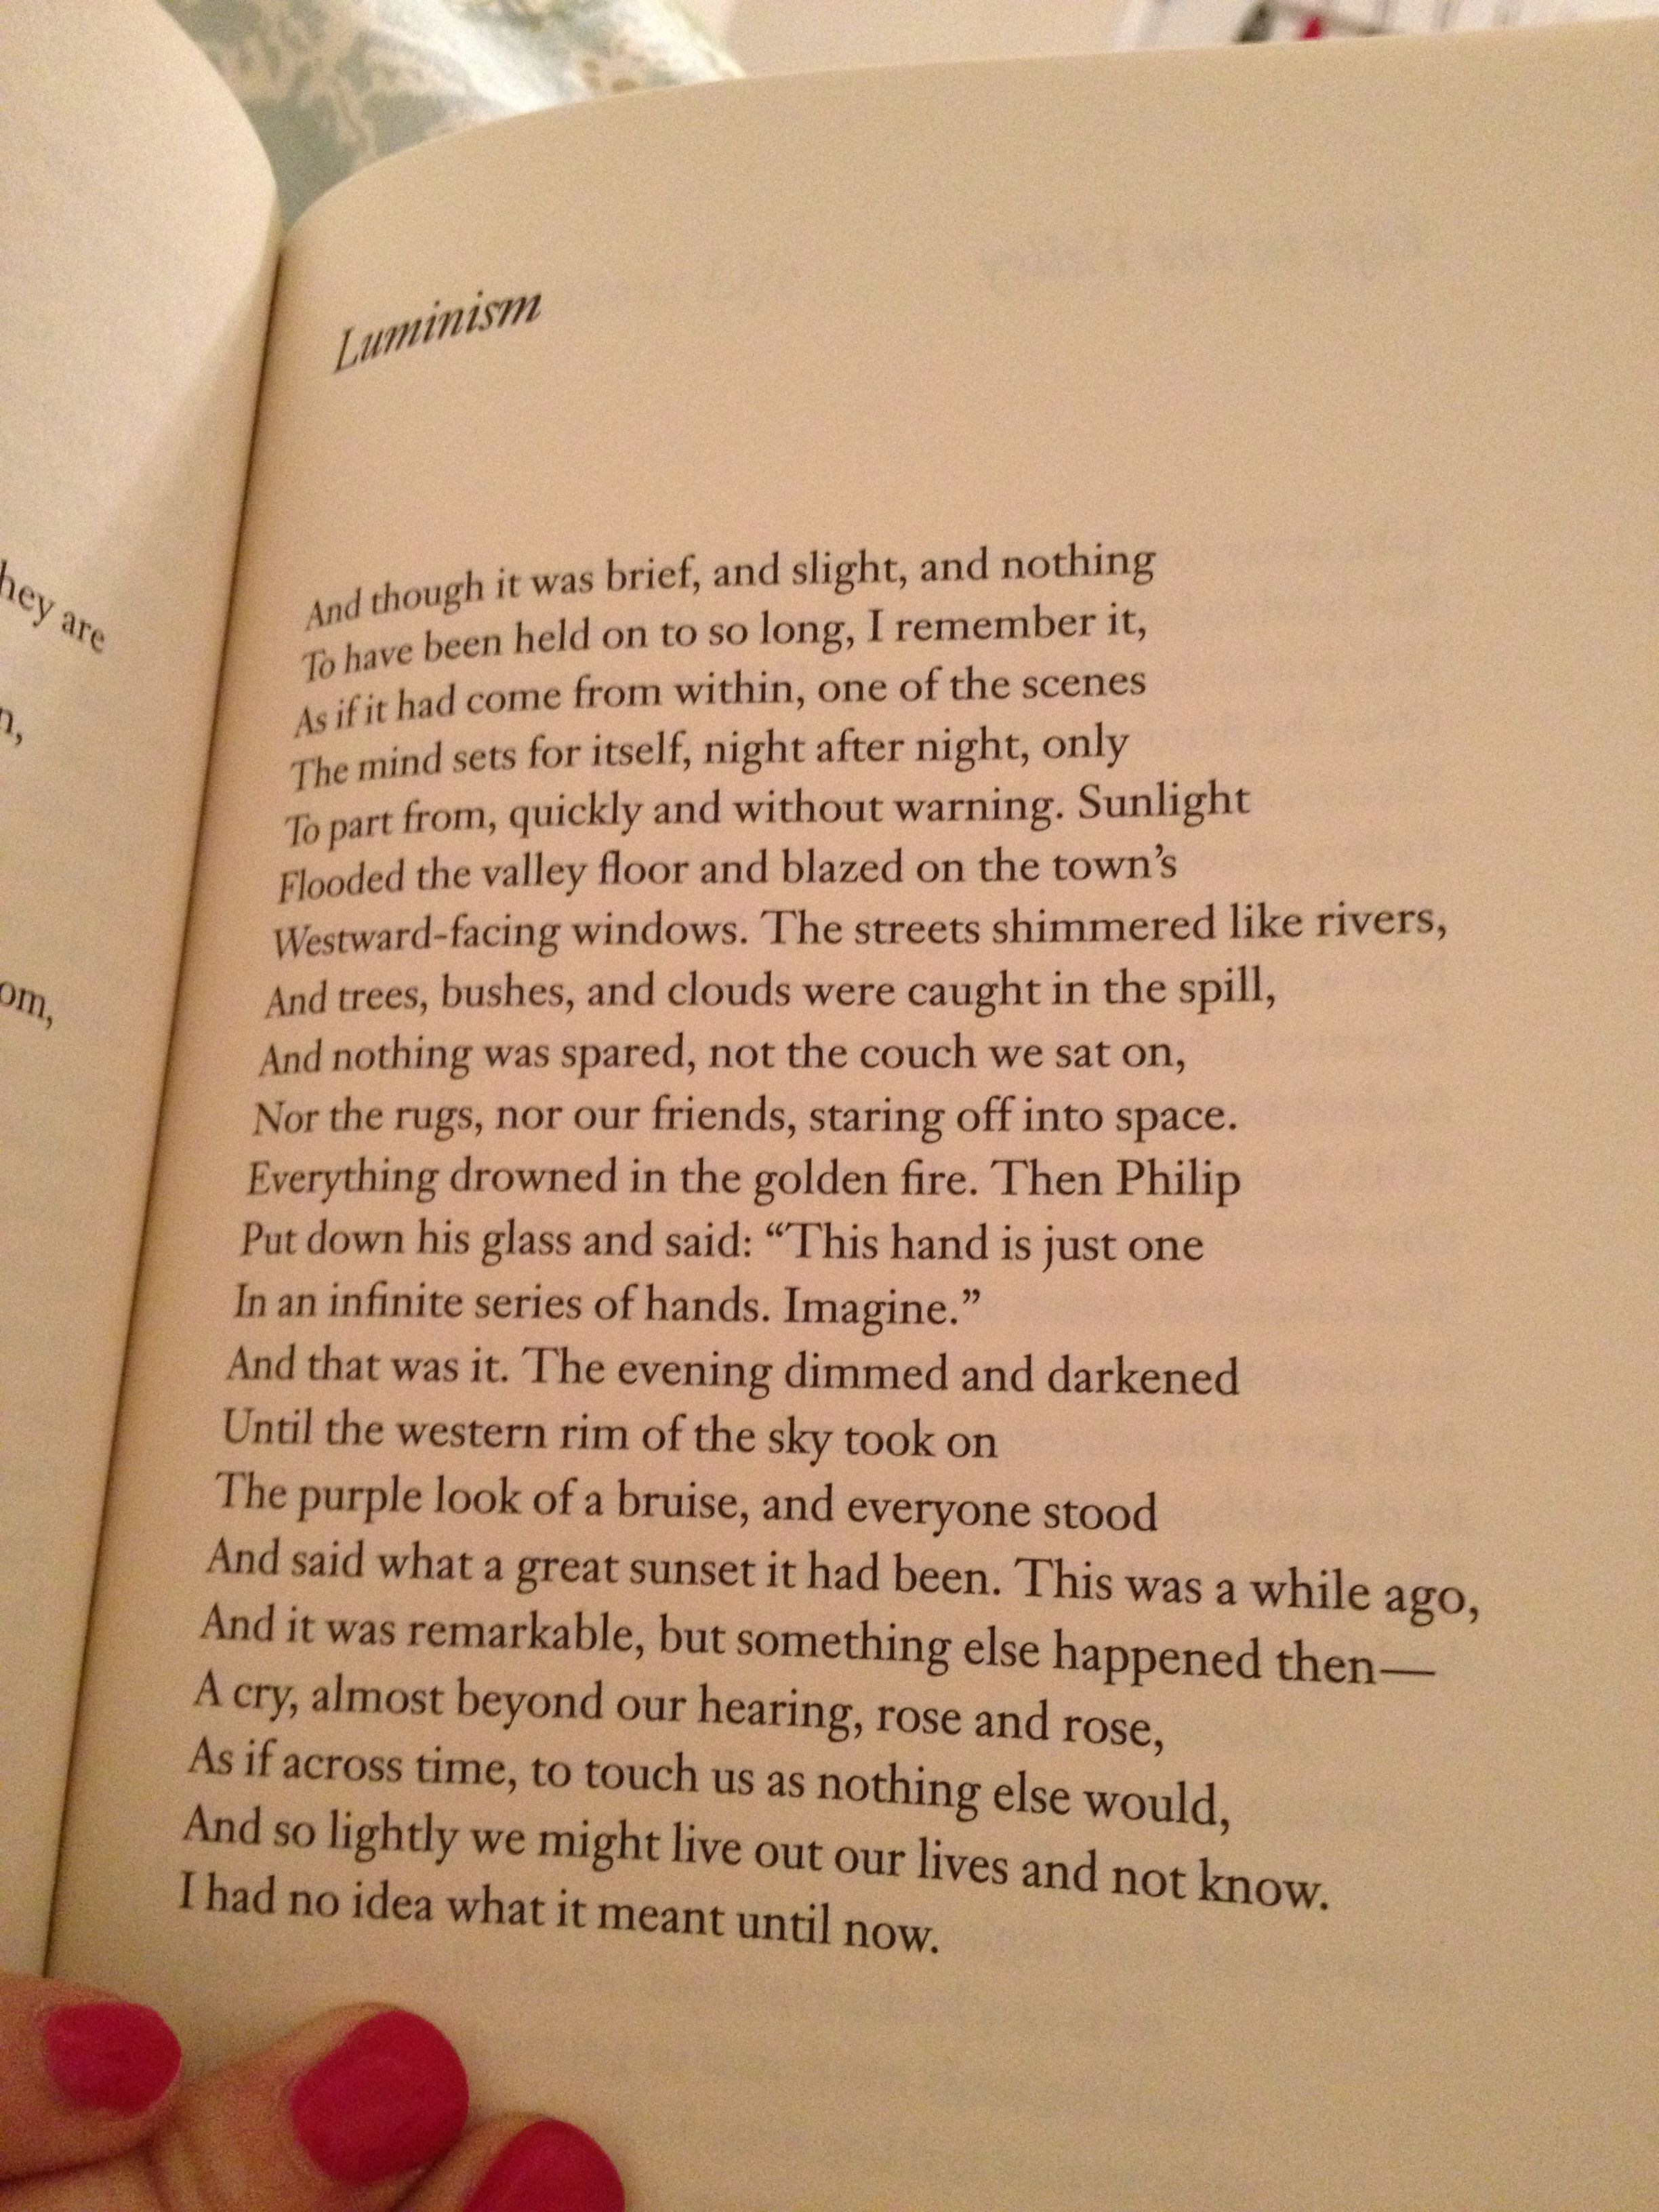 Luminism By Mark Strand Poetry